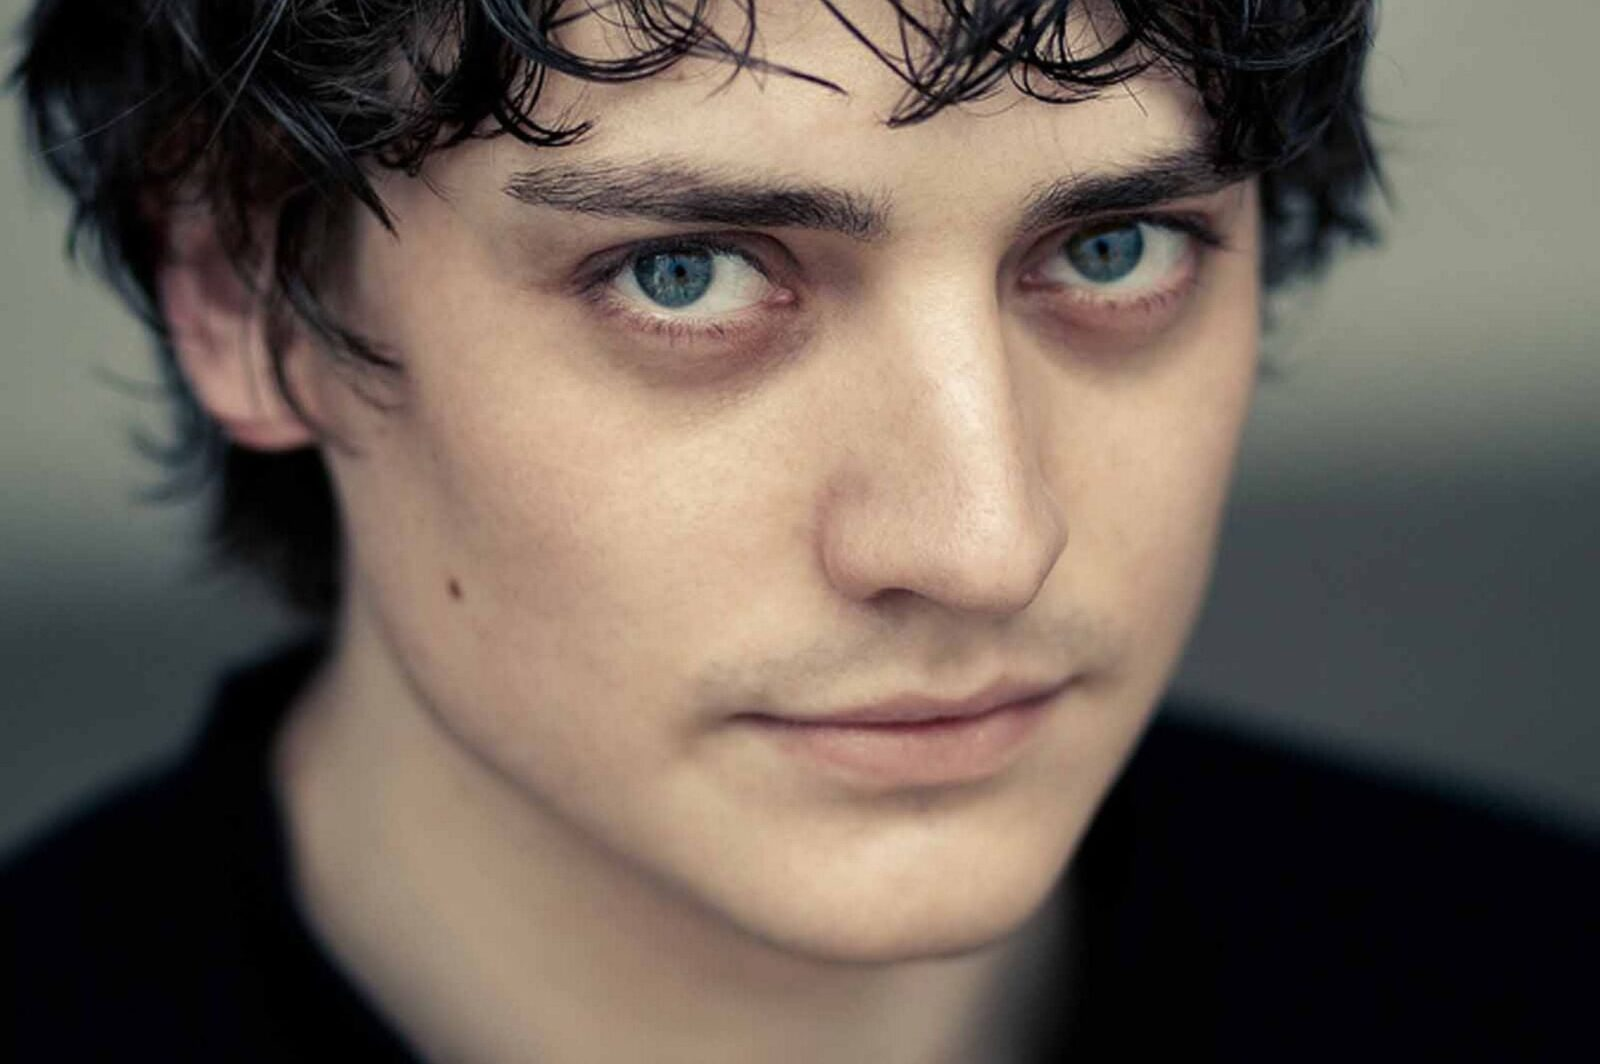 All Anime In One Wallpaper 10 Aneurin Barnard Hd Wallpapers Free Download